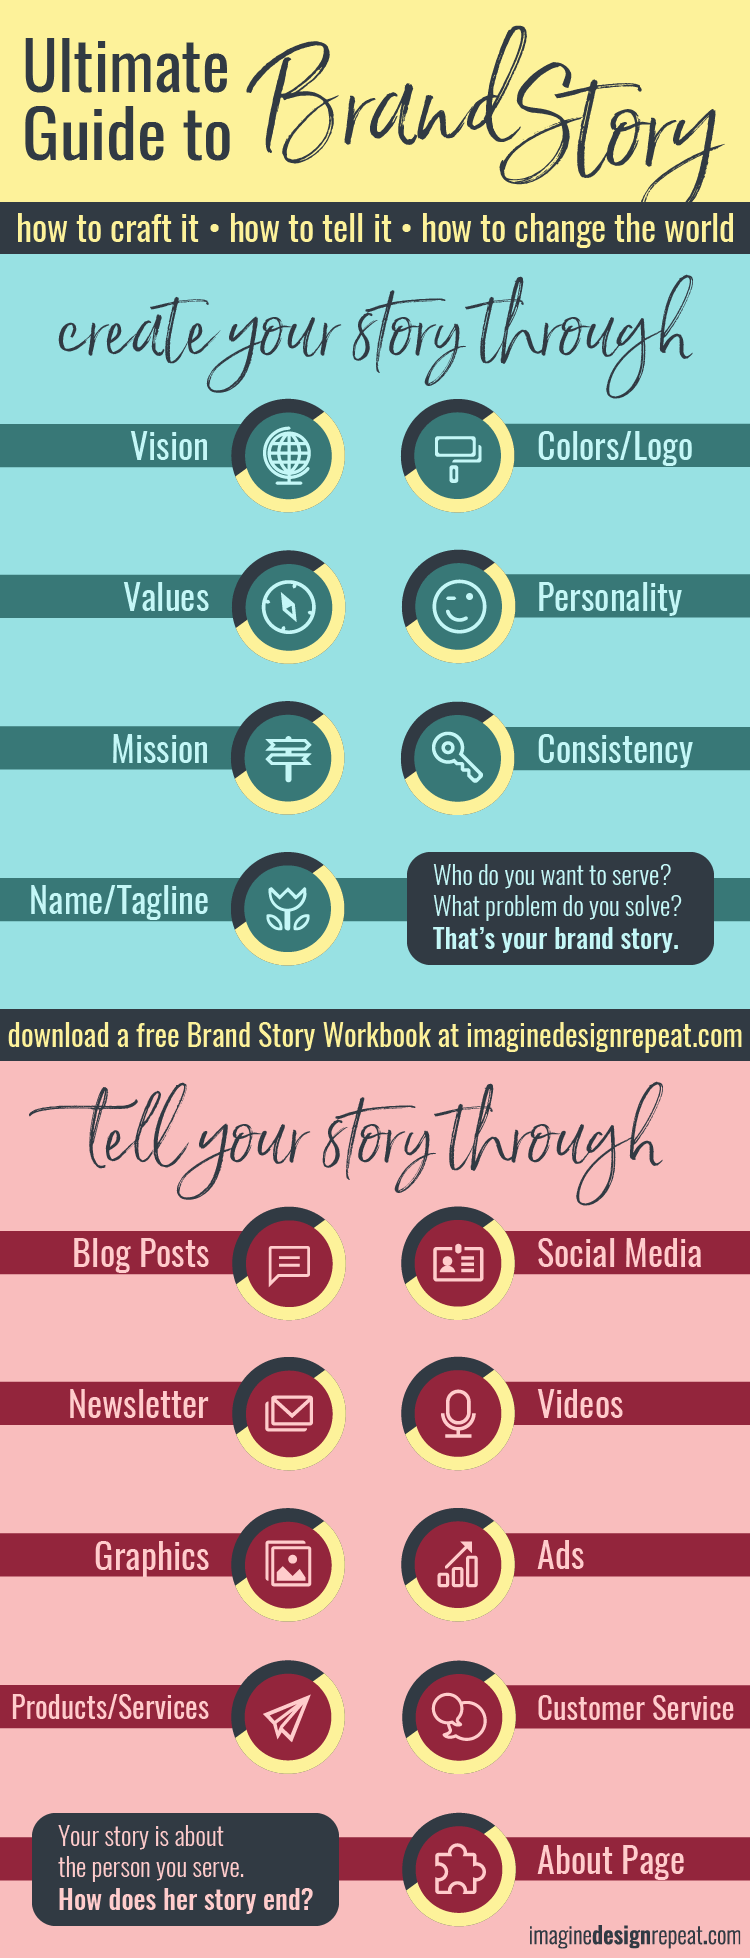 Confused about your brand story? I made up a simple workbook that will walk you through crafting a story your audience will love - because it's all about them!